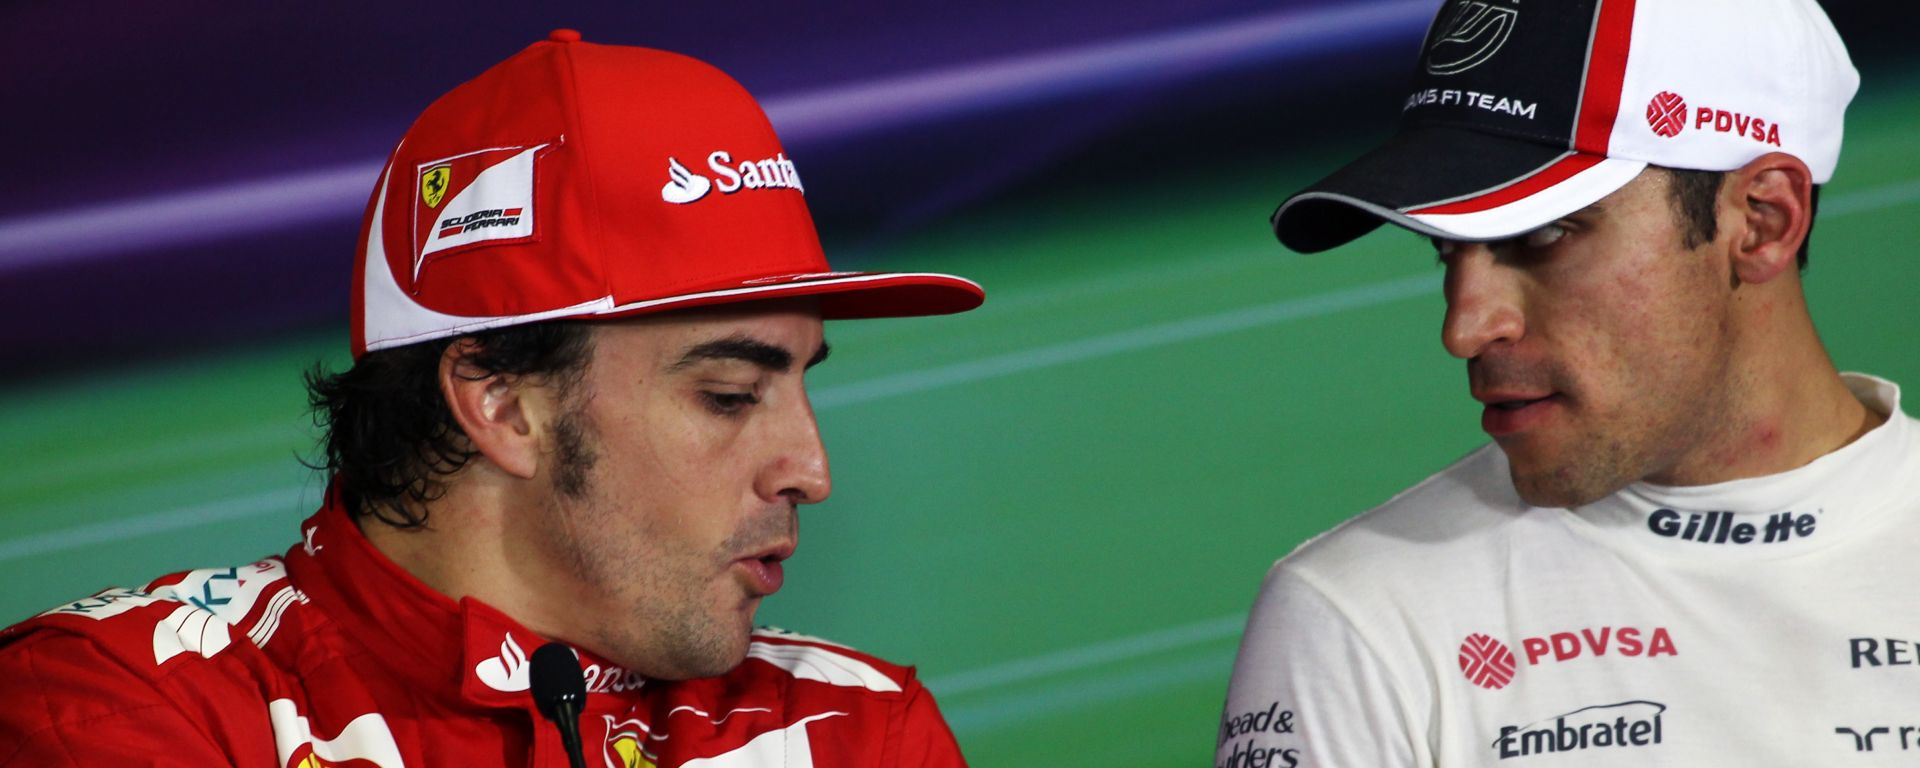 F1 2012: Fernando Alonso (Ferrari) e Pastor Maldonado (Williams)